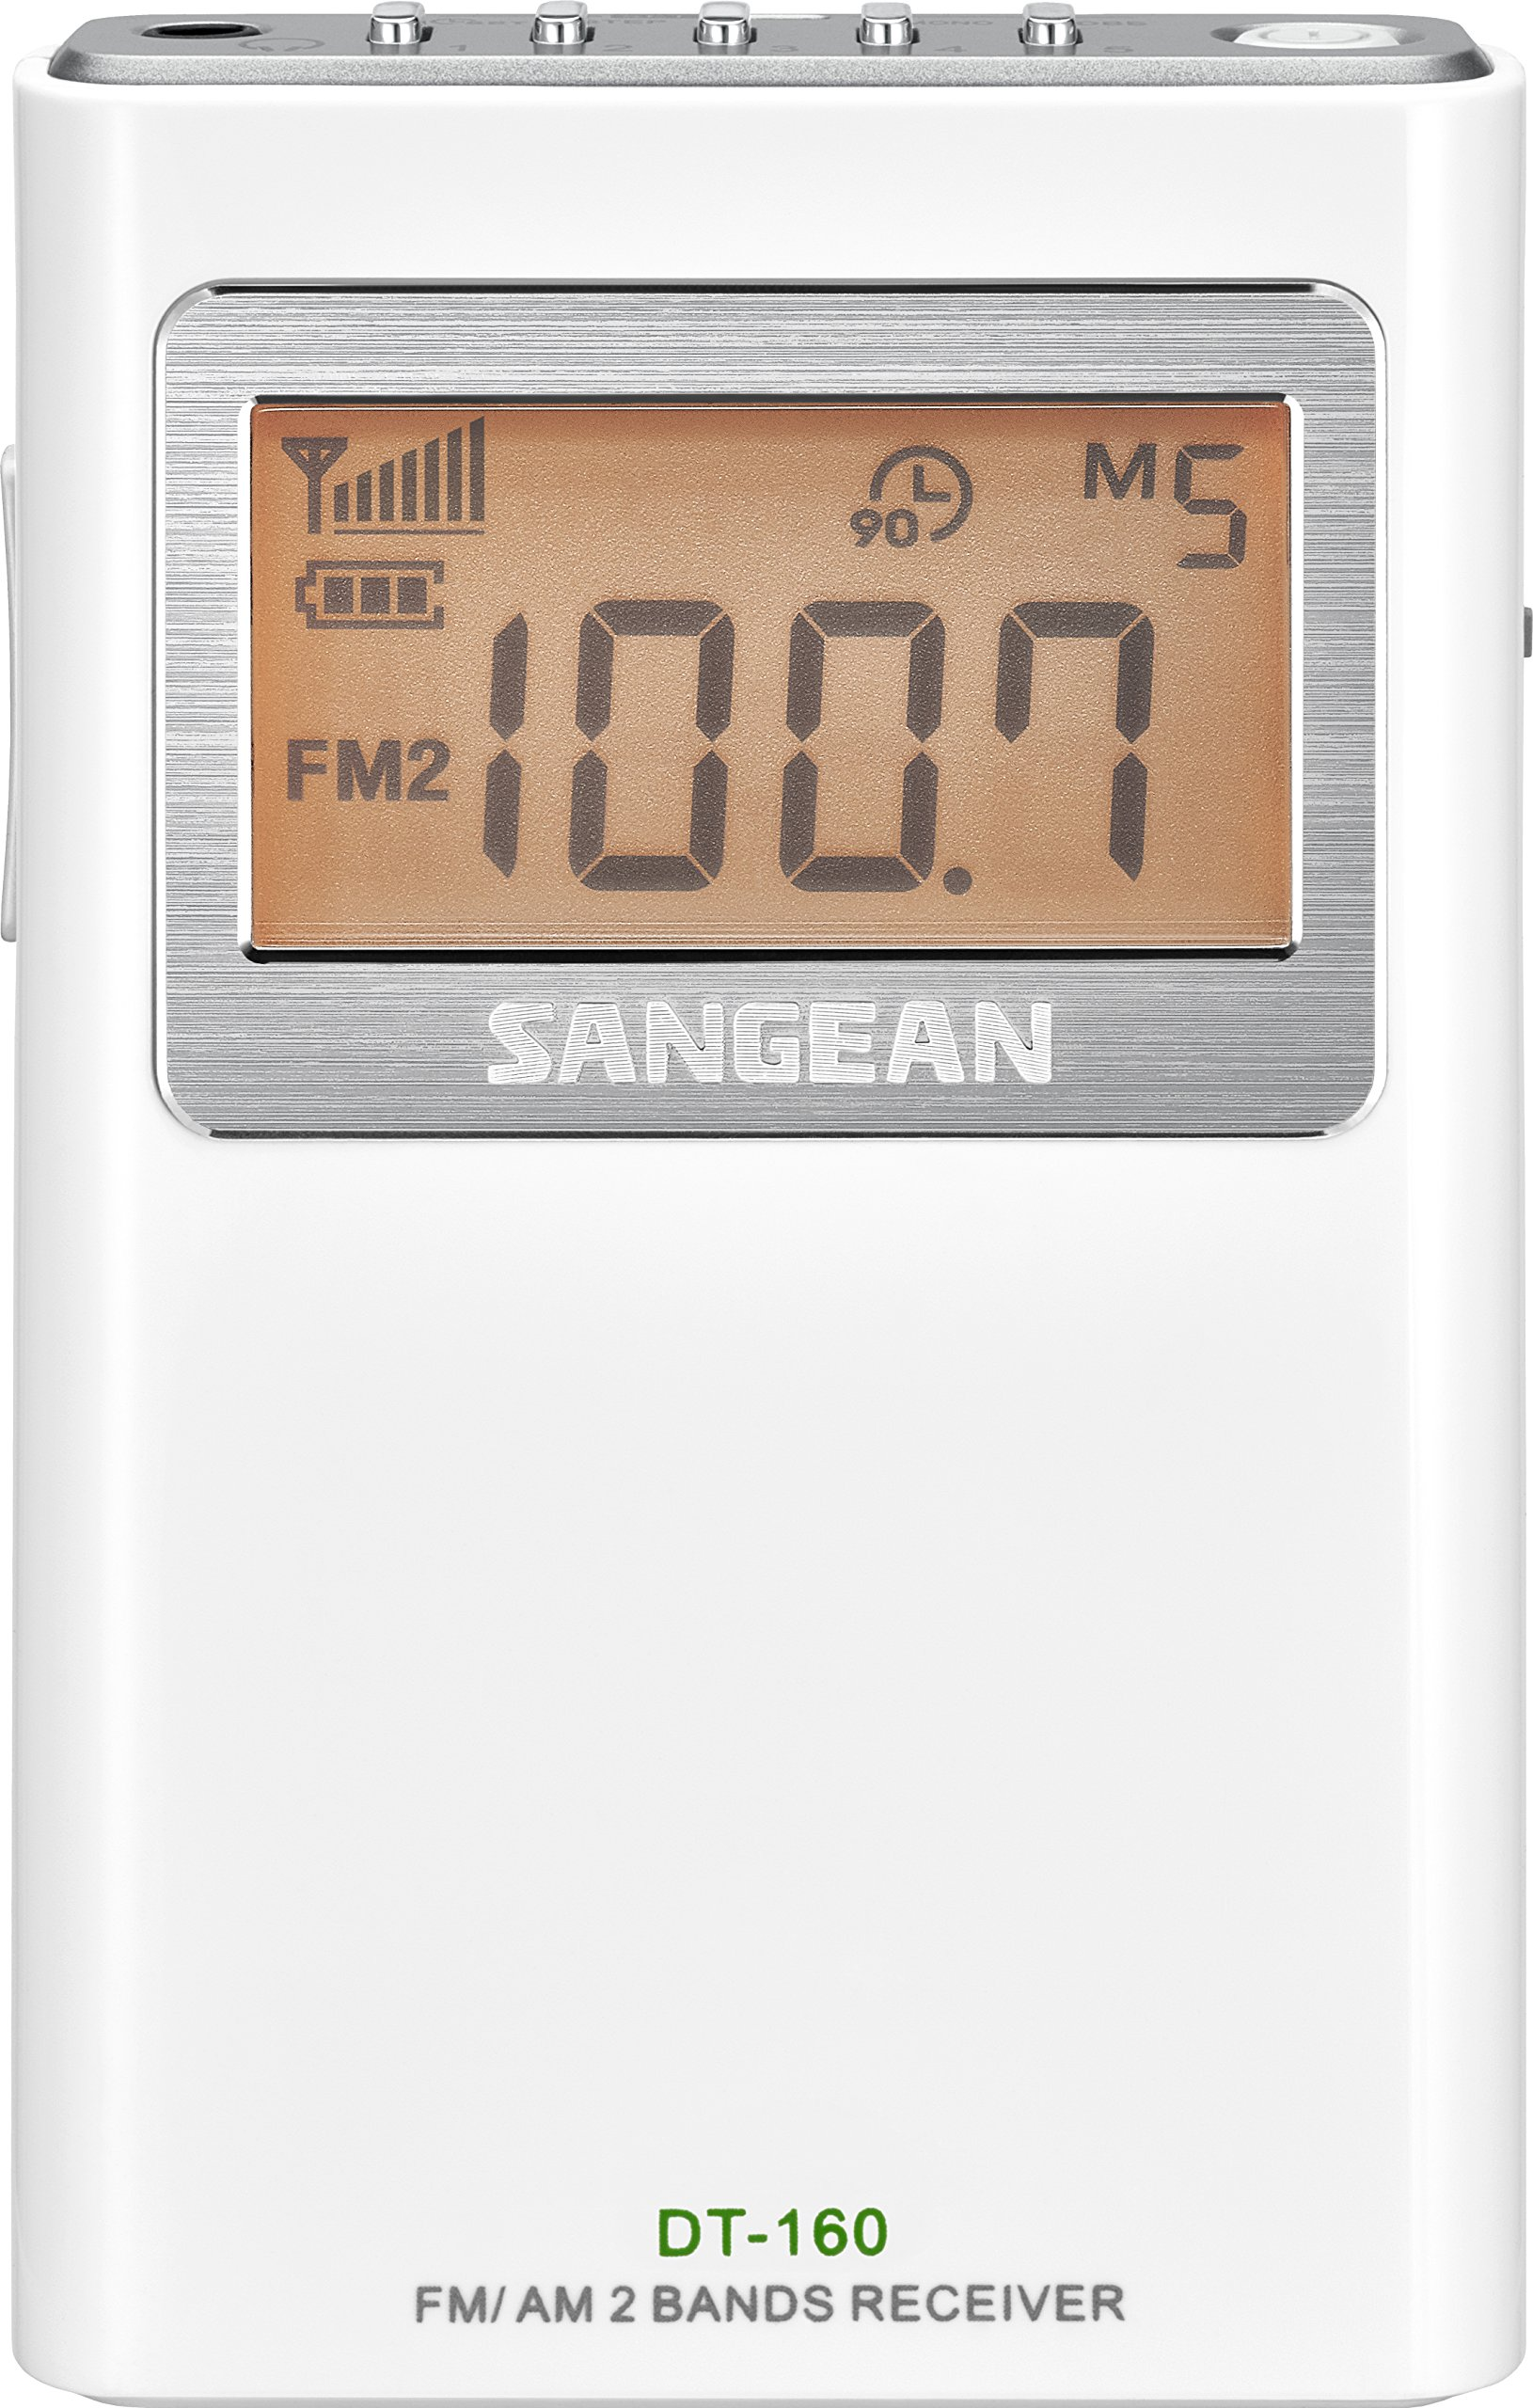 Sangean DT-160 AM/FM Stereo Pocket Radio with 100 Operating Hours on 2 AA Batteries, White